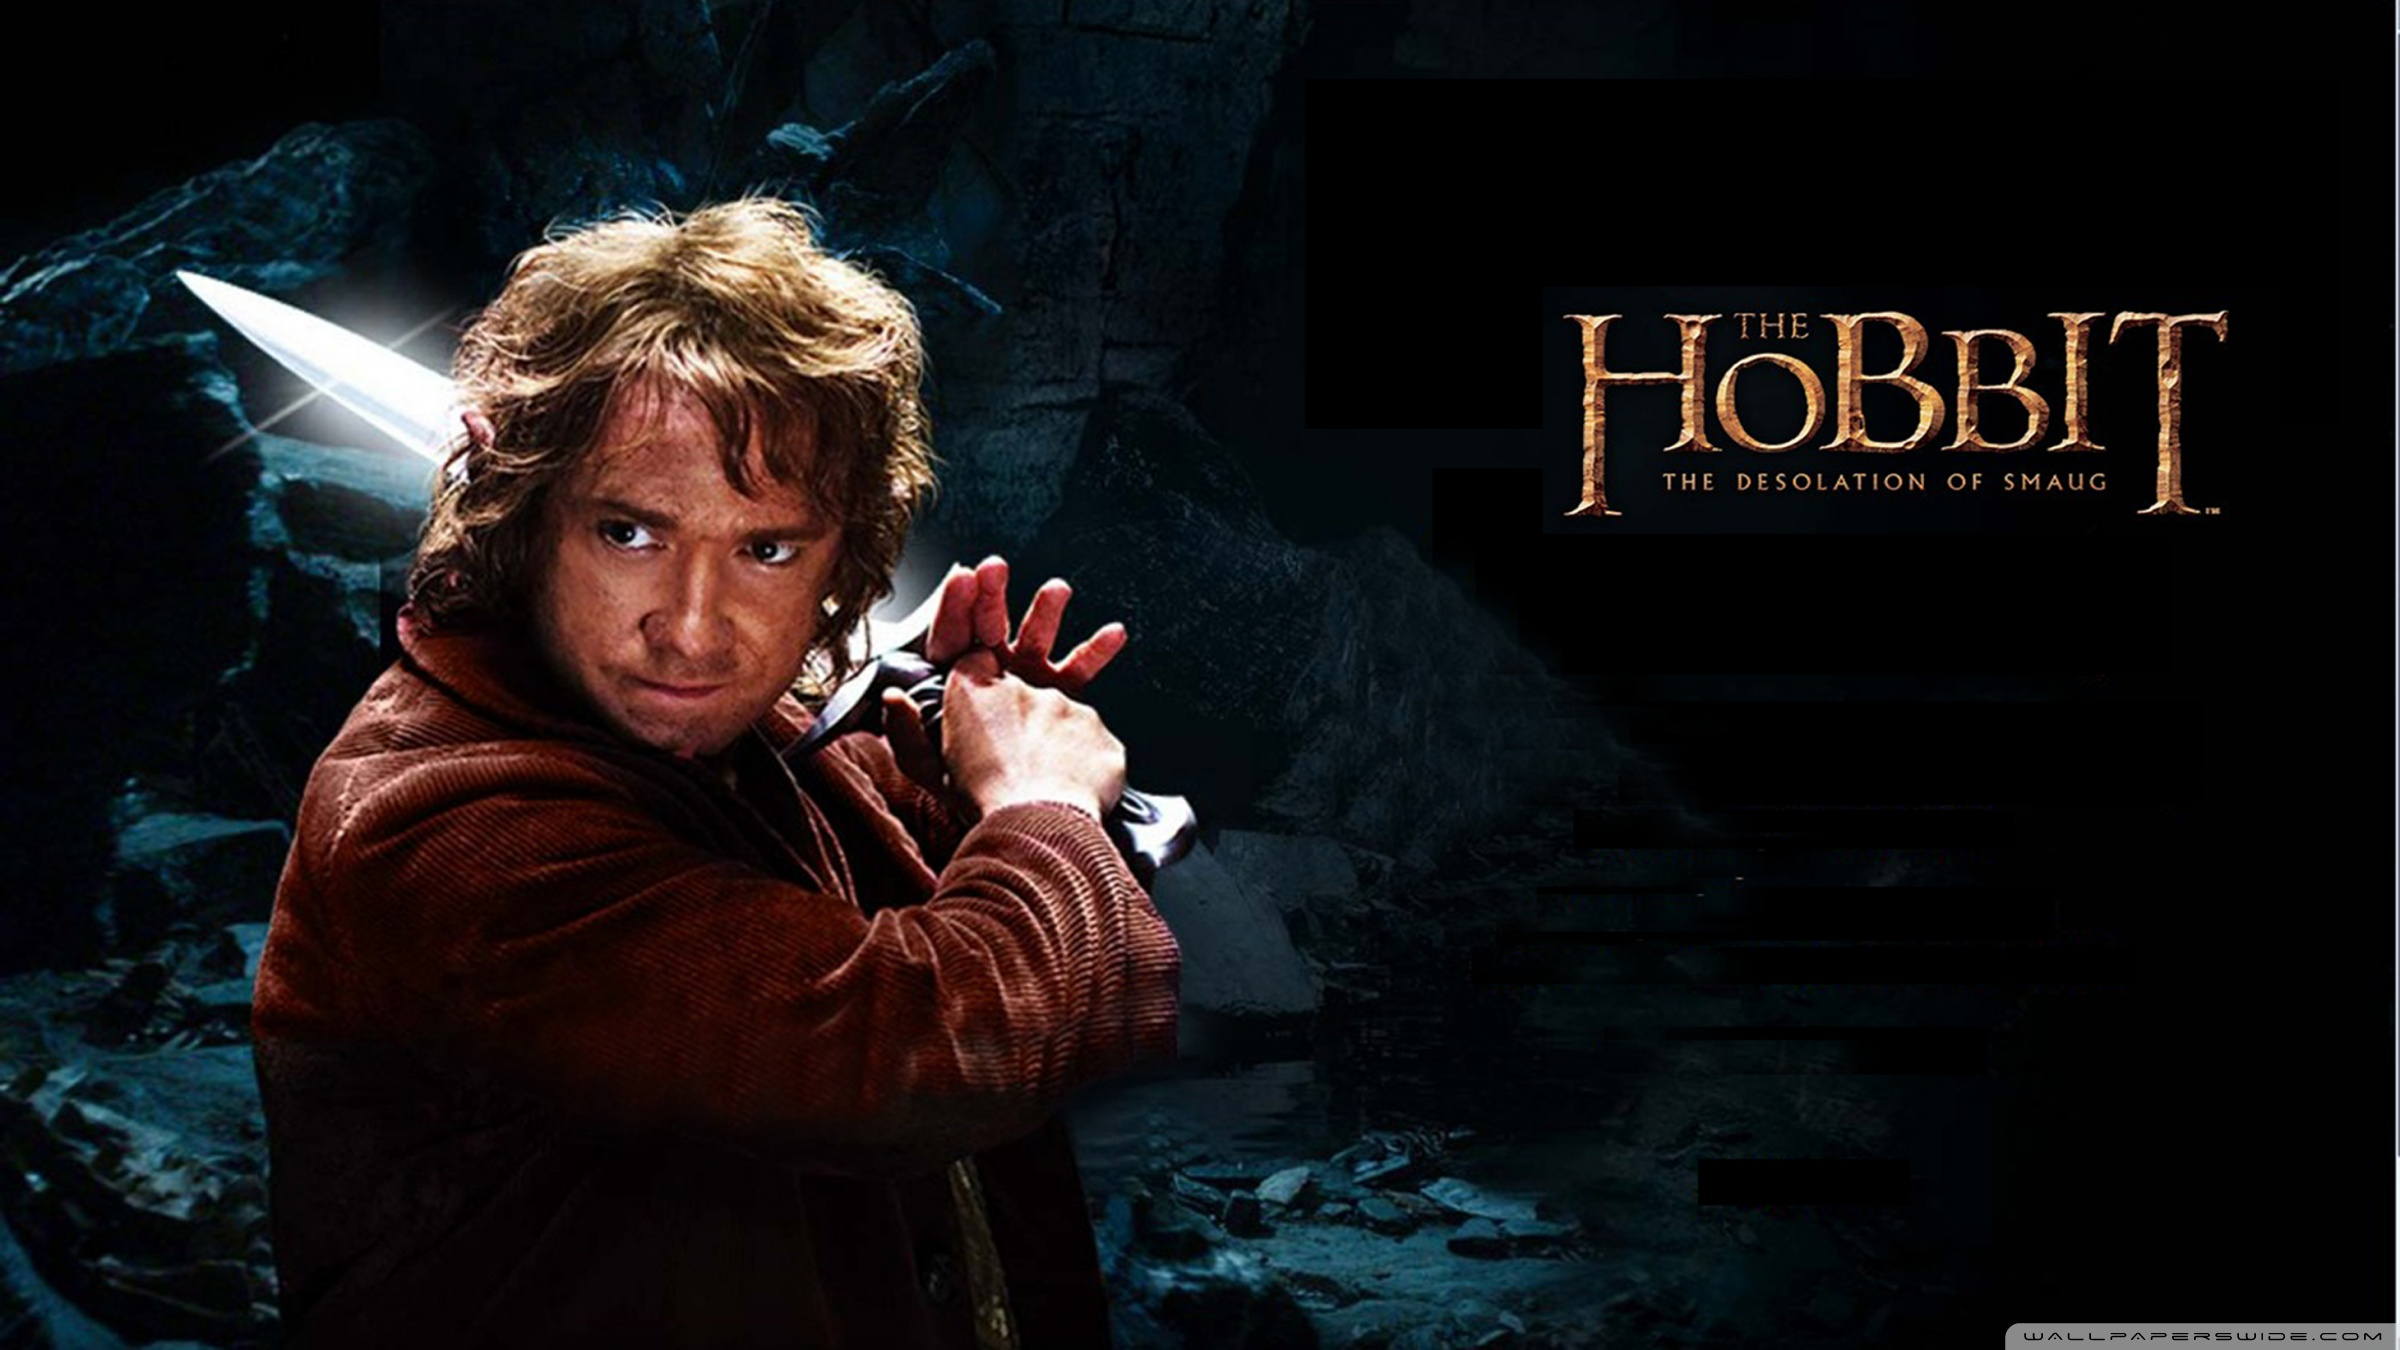 the hobbit the desolation of smaug hd wallpaper photo